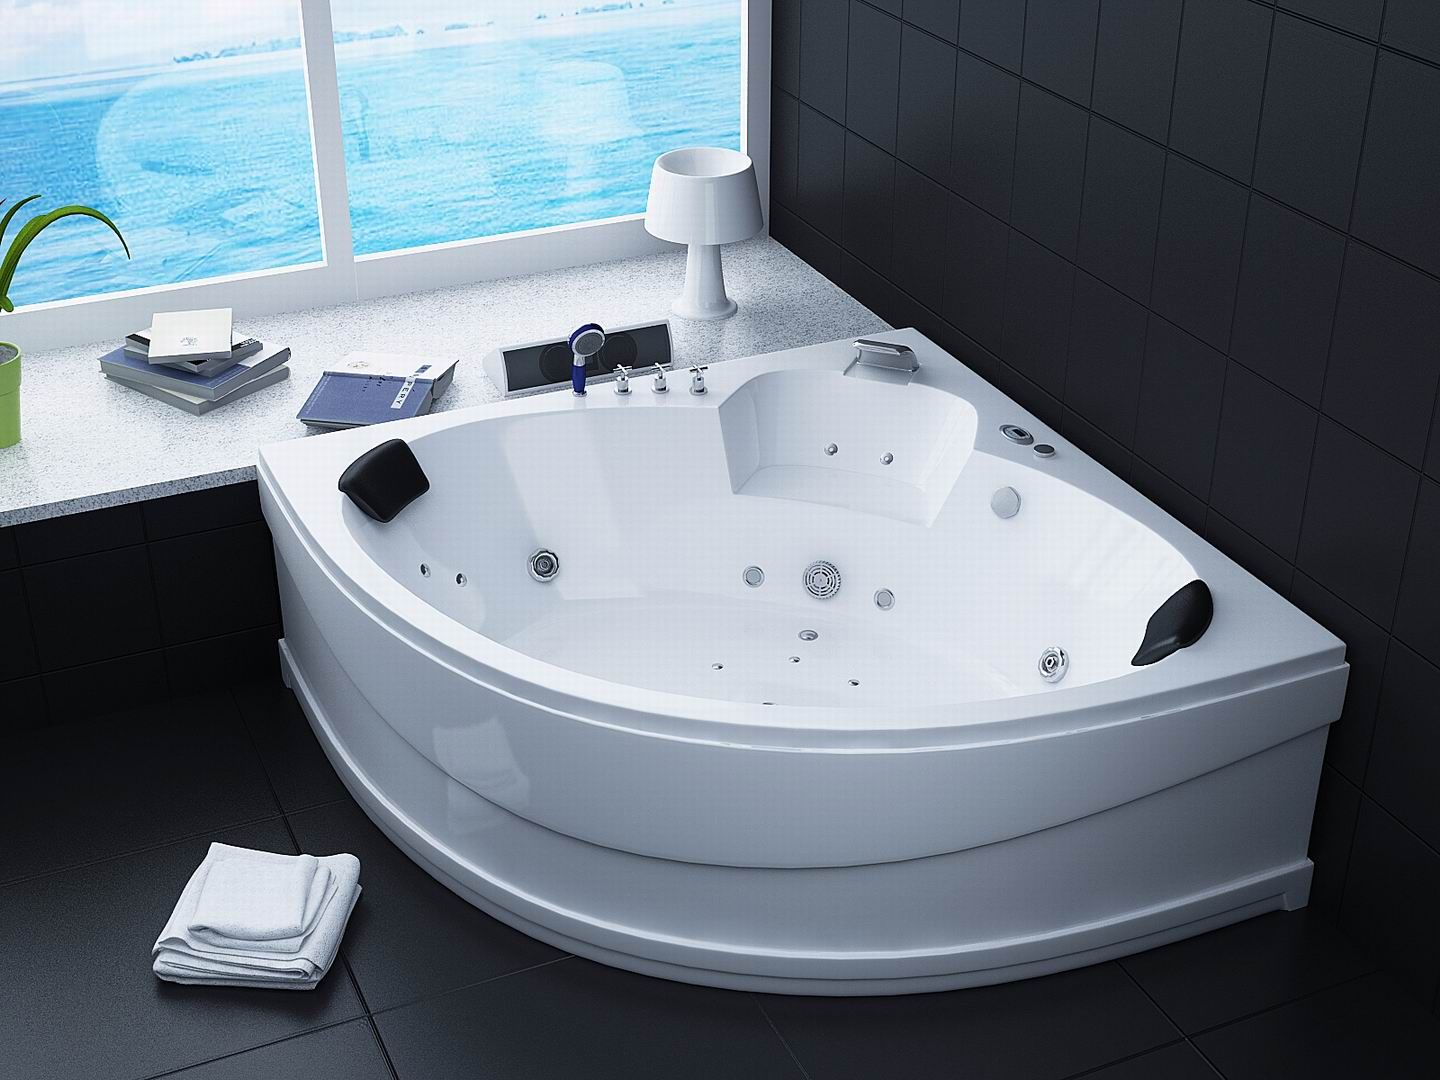 Bathtubs china jacuzzi bathtub mt nr1801 large image for jacuzzi bathtub dream house - Bathroom designs with jacuzzi tub ...